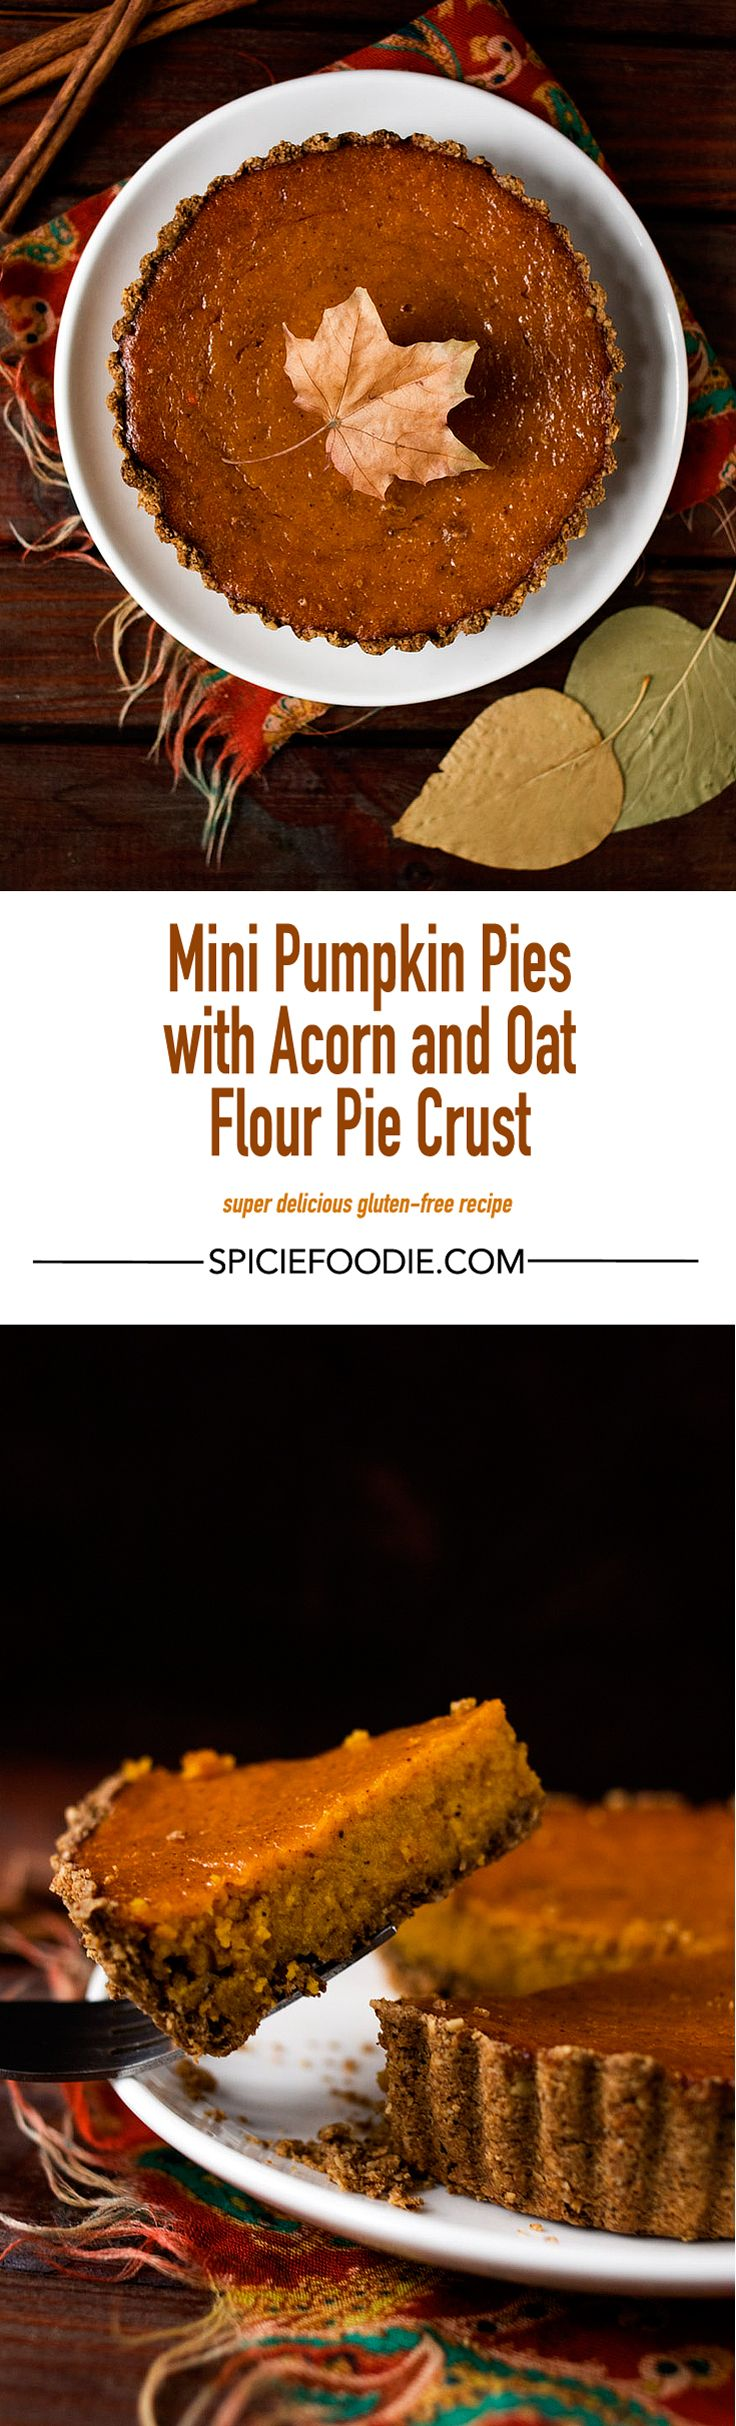 Mini #Pumpkin #Pies Made With #Acorn and #Oat Flour Pie Crust | #pumpkinpie #dessert #homemade